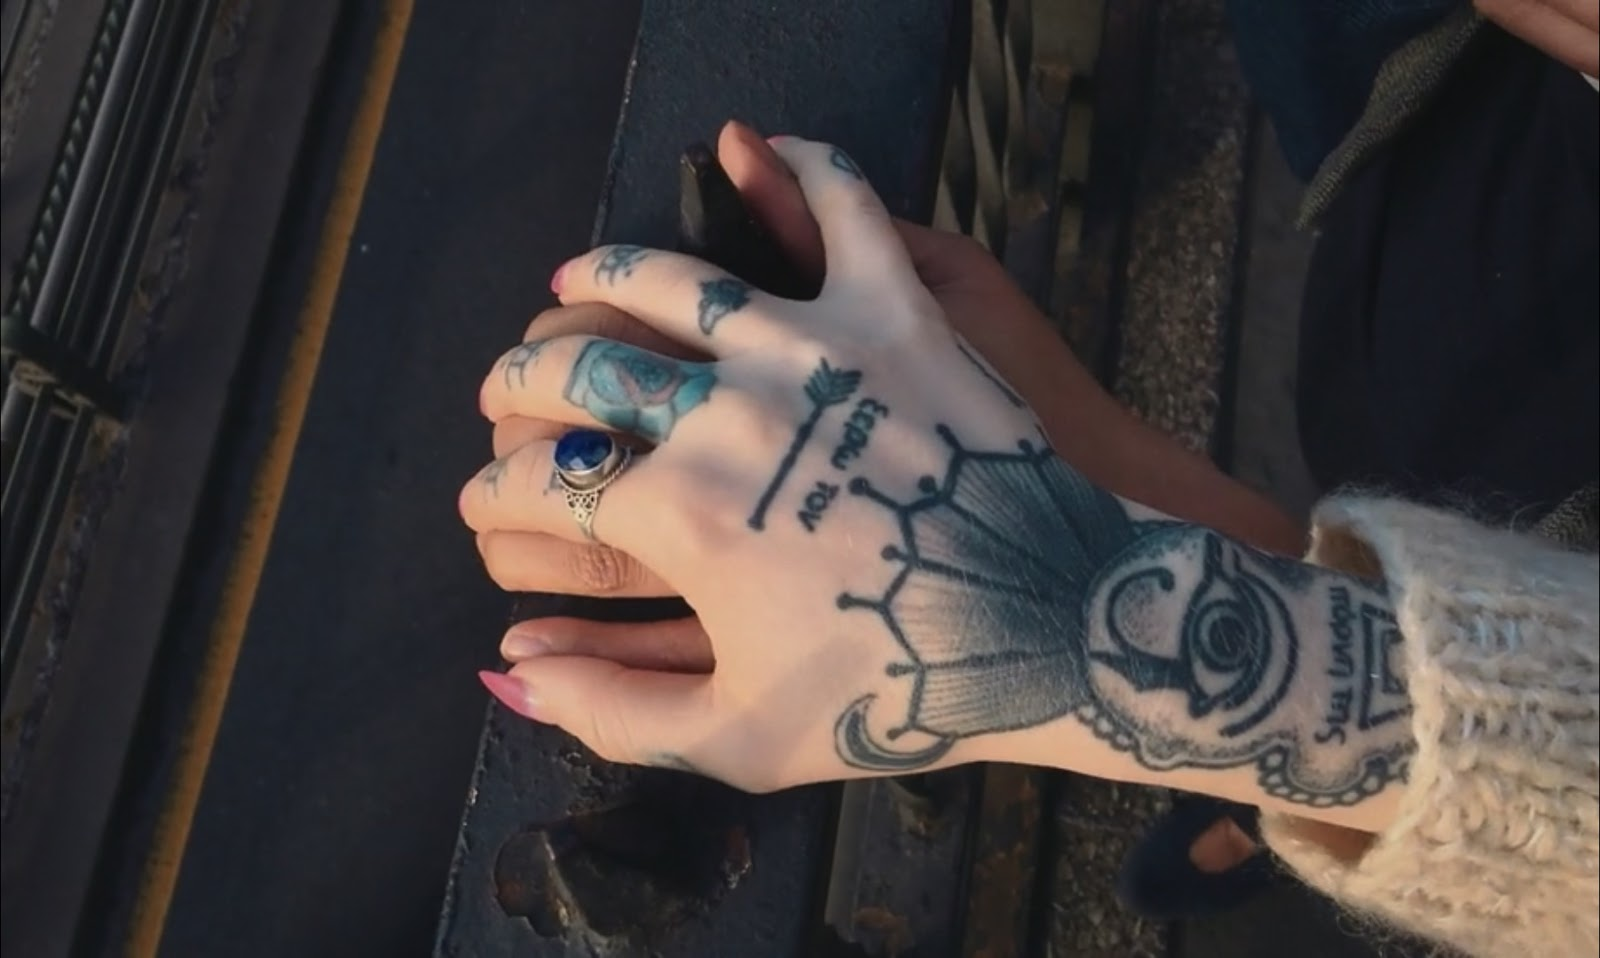 A close-up of two hands on a railing, one resting on top of the other. The hand on top is heavily tattooed and has a ring with a large blue stone in it.